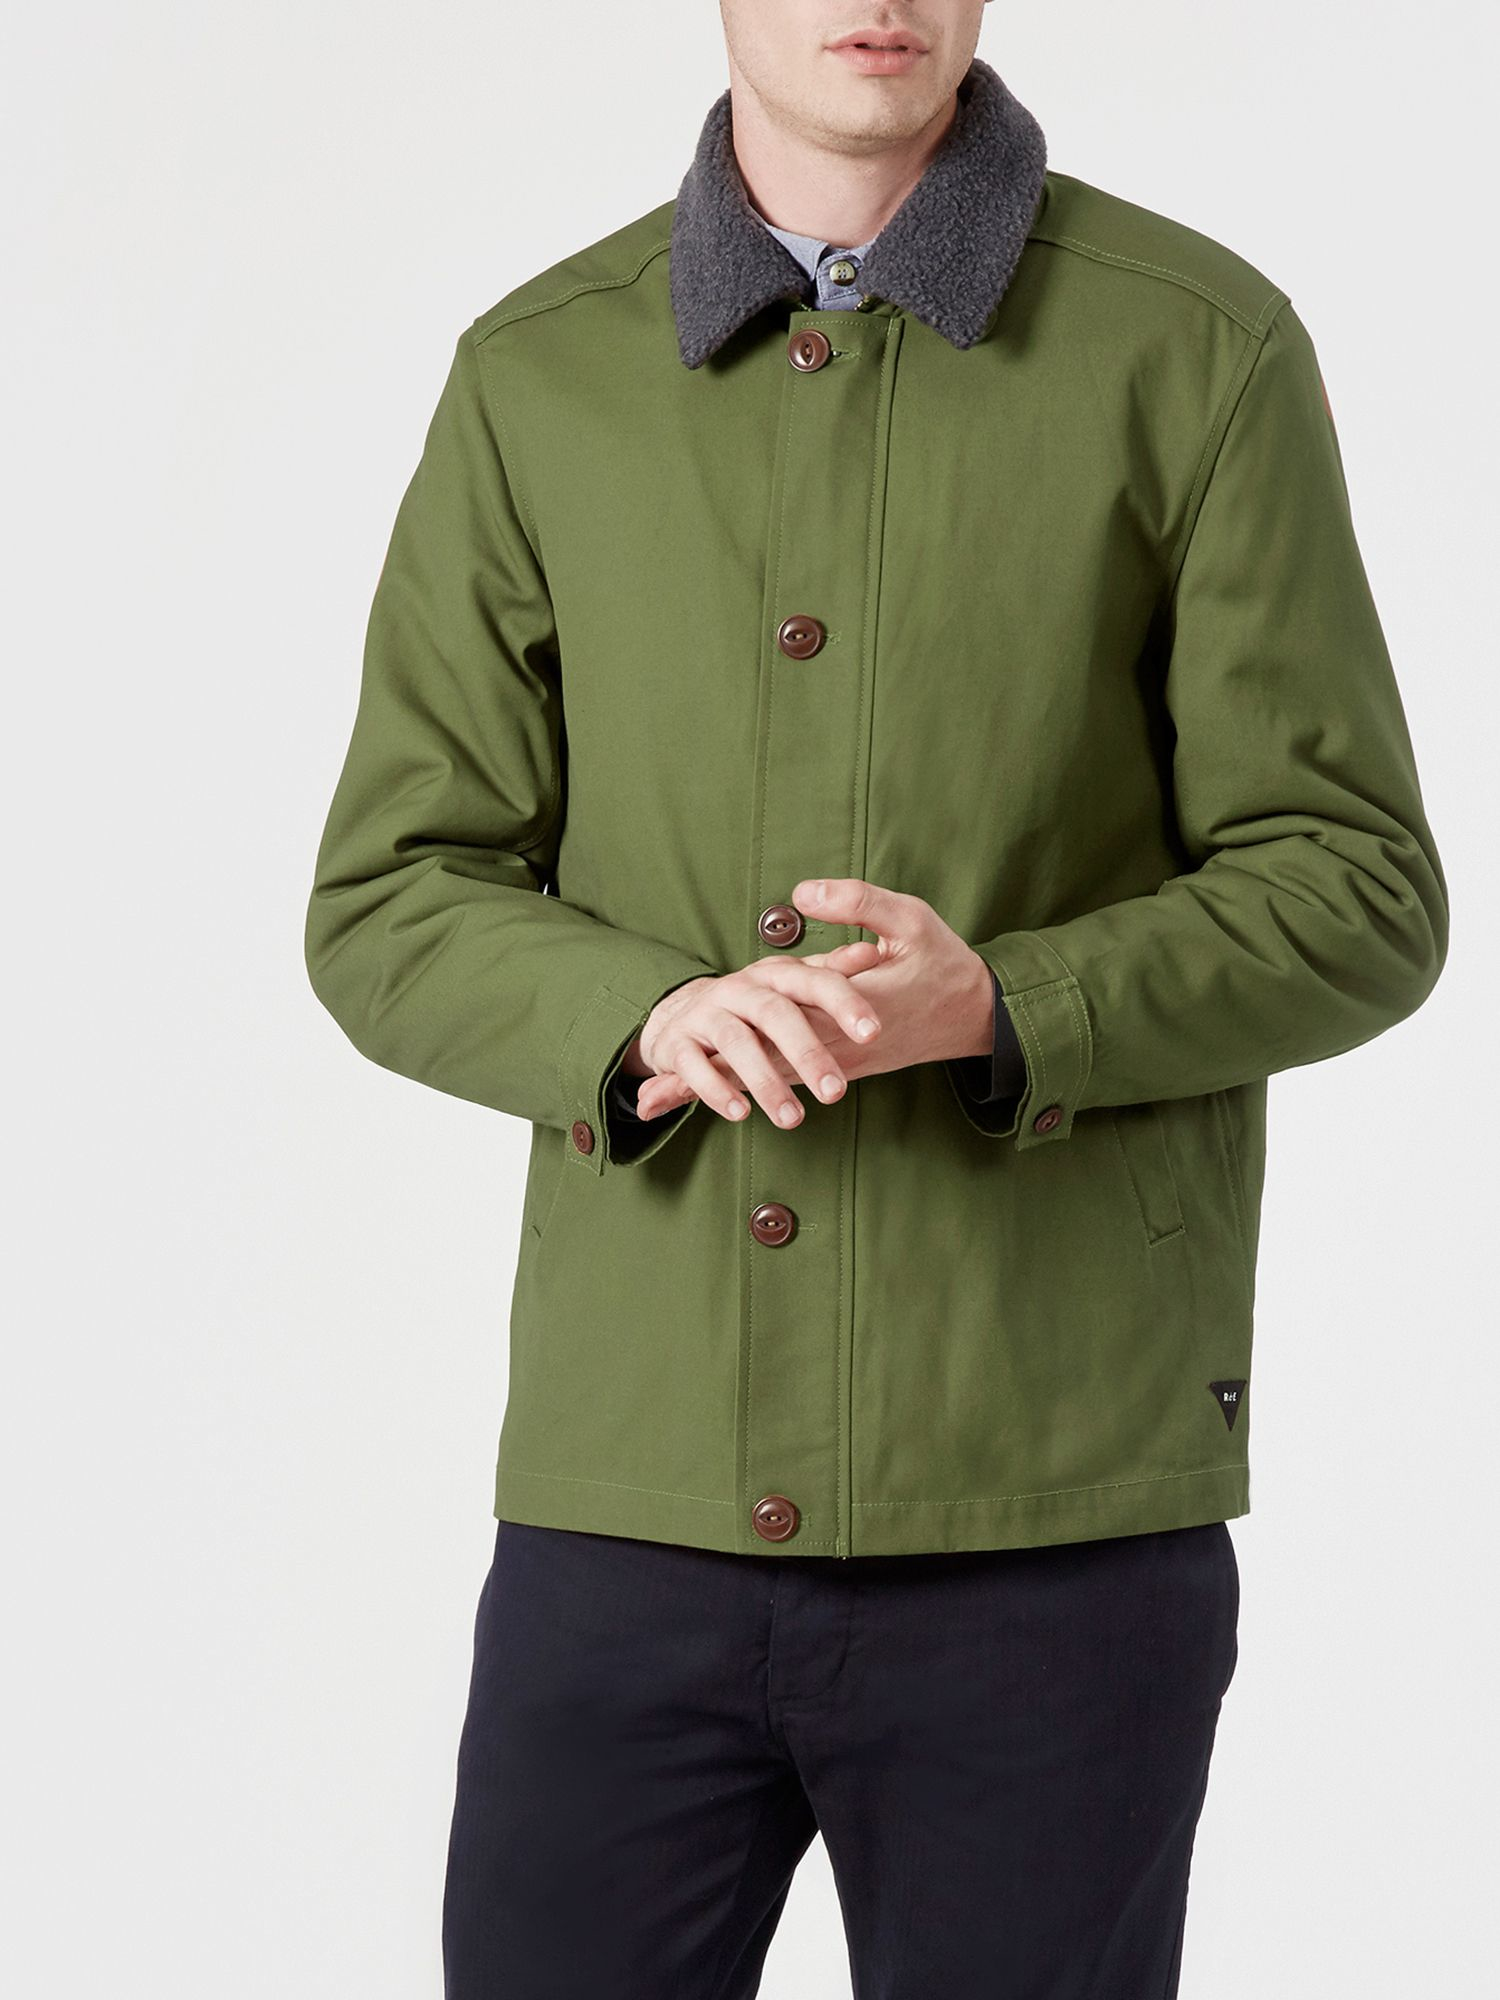 Realm & empire Car Coat With Detachable Fleece Collar in Green for